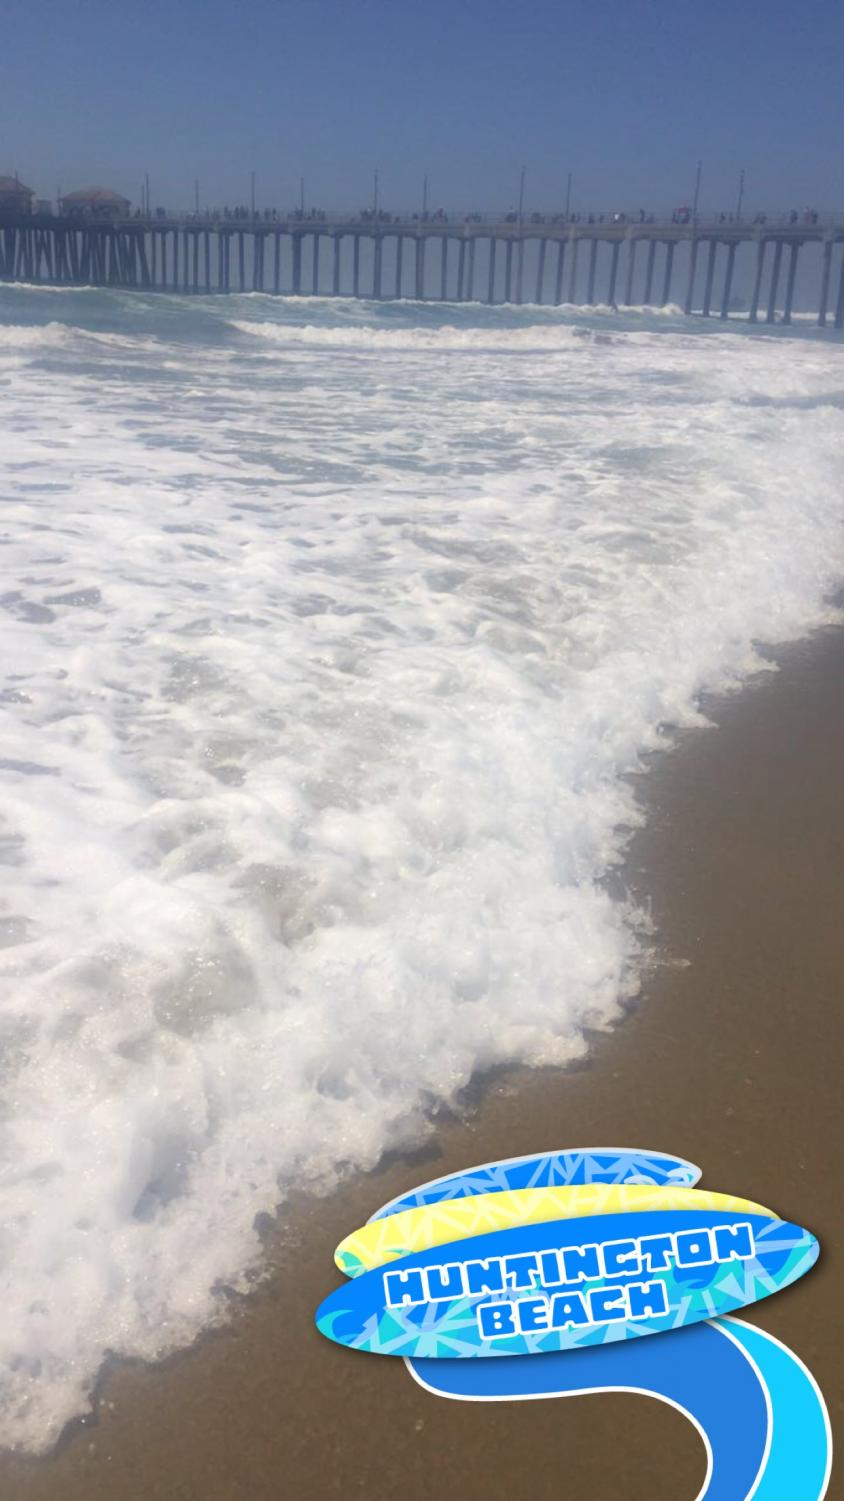 One of the most popular beaches for surfing is Huntington Beach, California, home of the U.S. Open Surfing Competition each year during the summer.